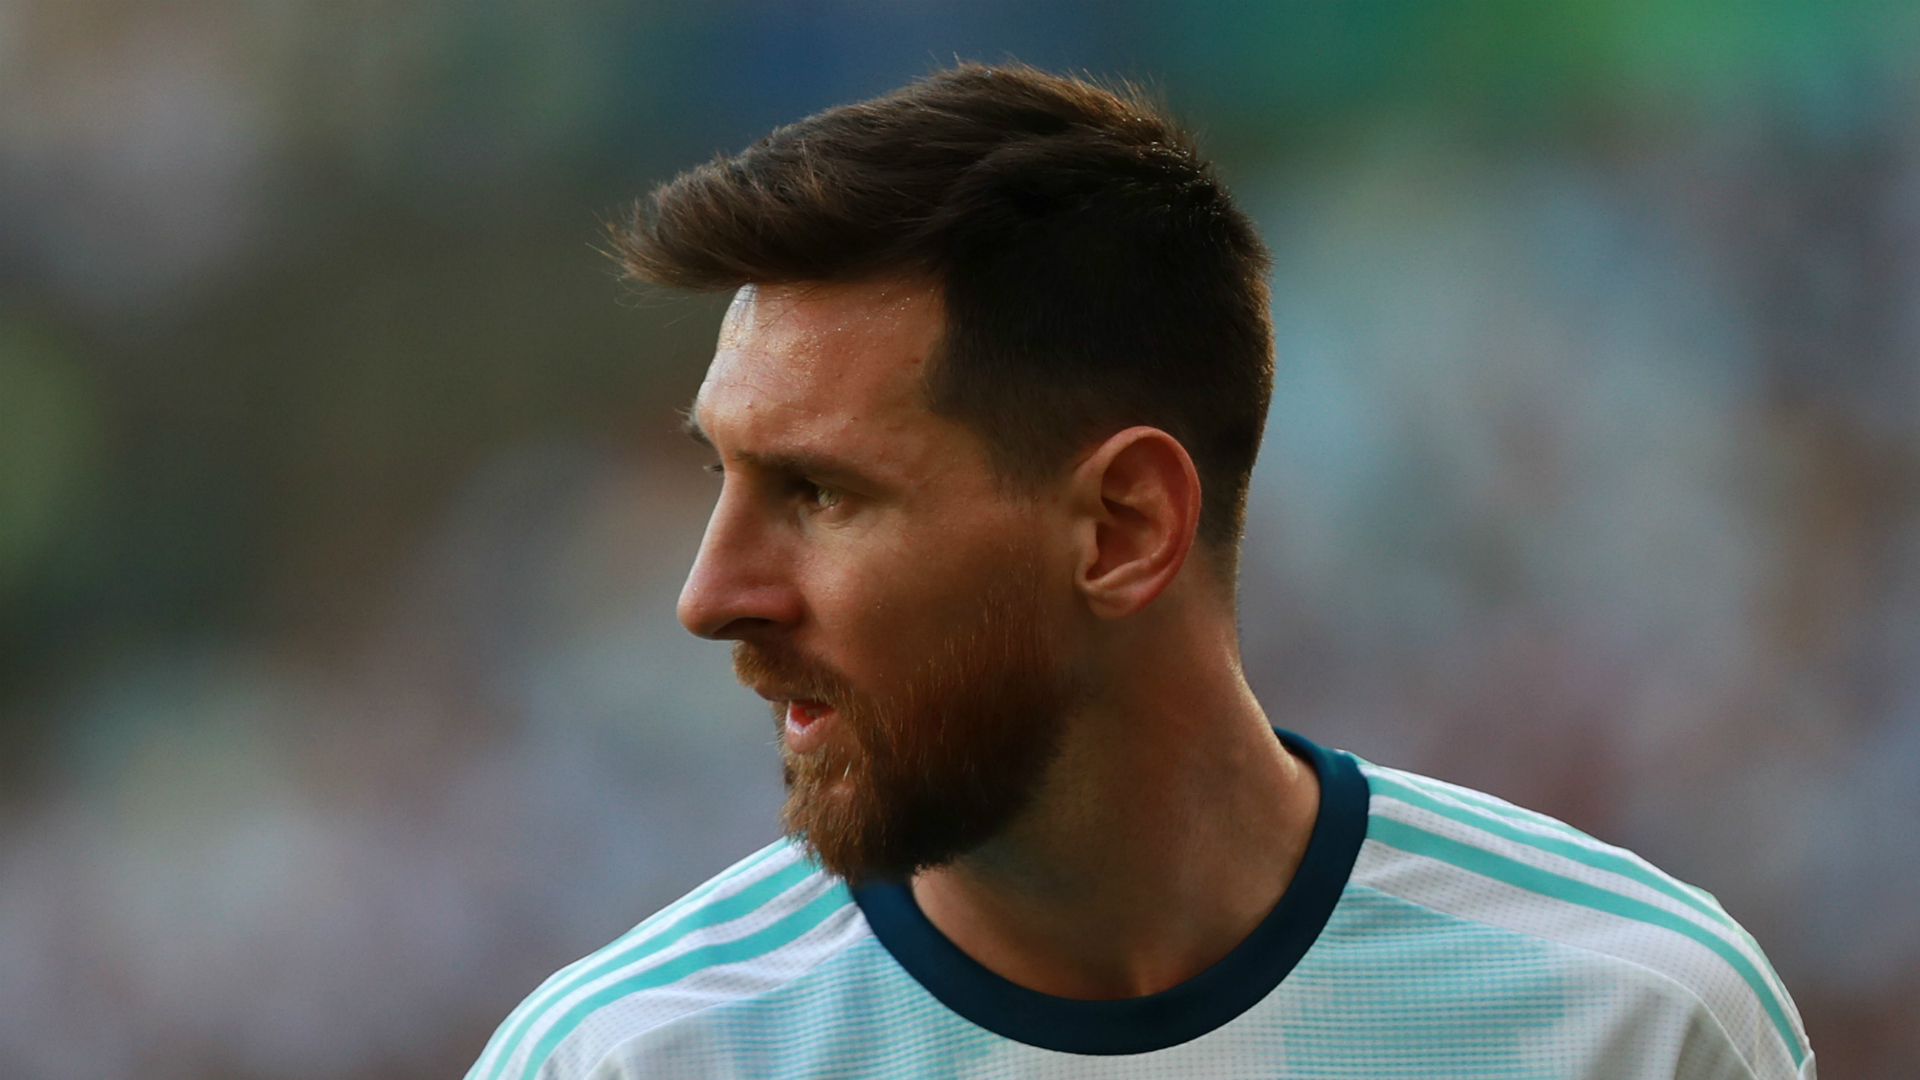 Brazil v Argentina: Messi bids for glory as rivals meet in Copa America semi-finals